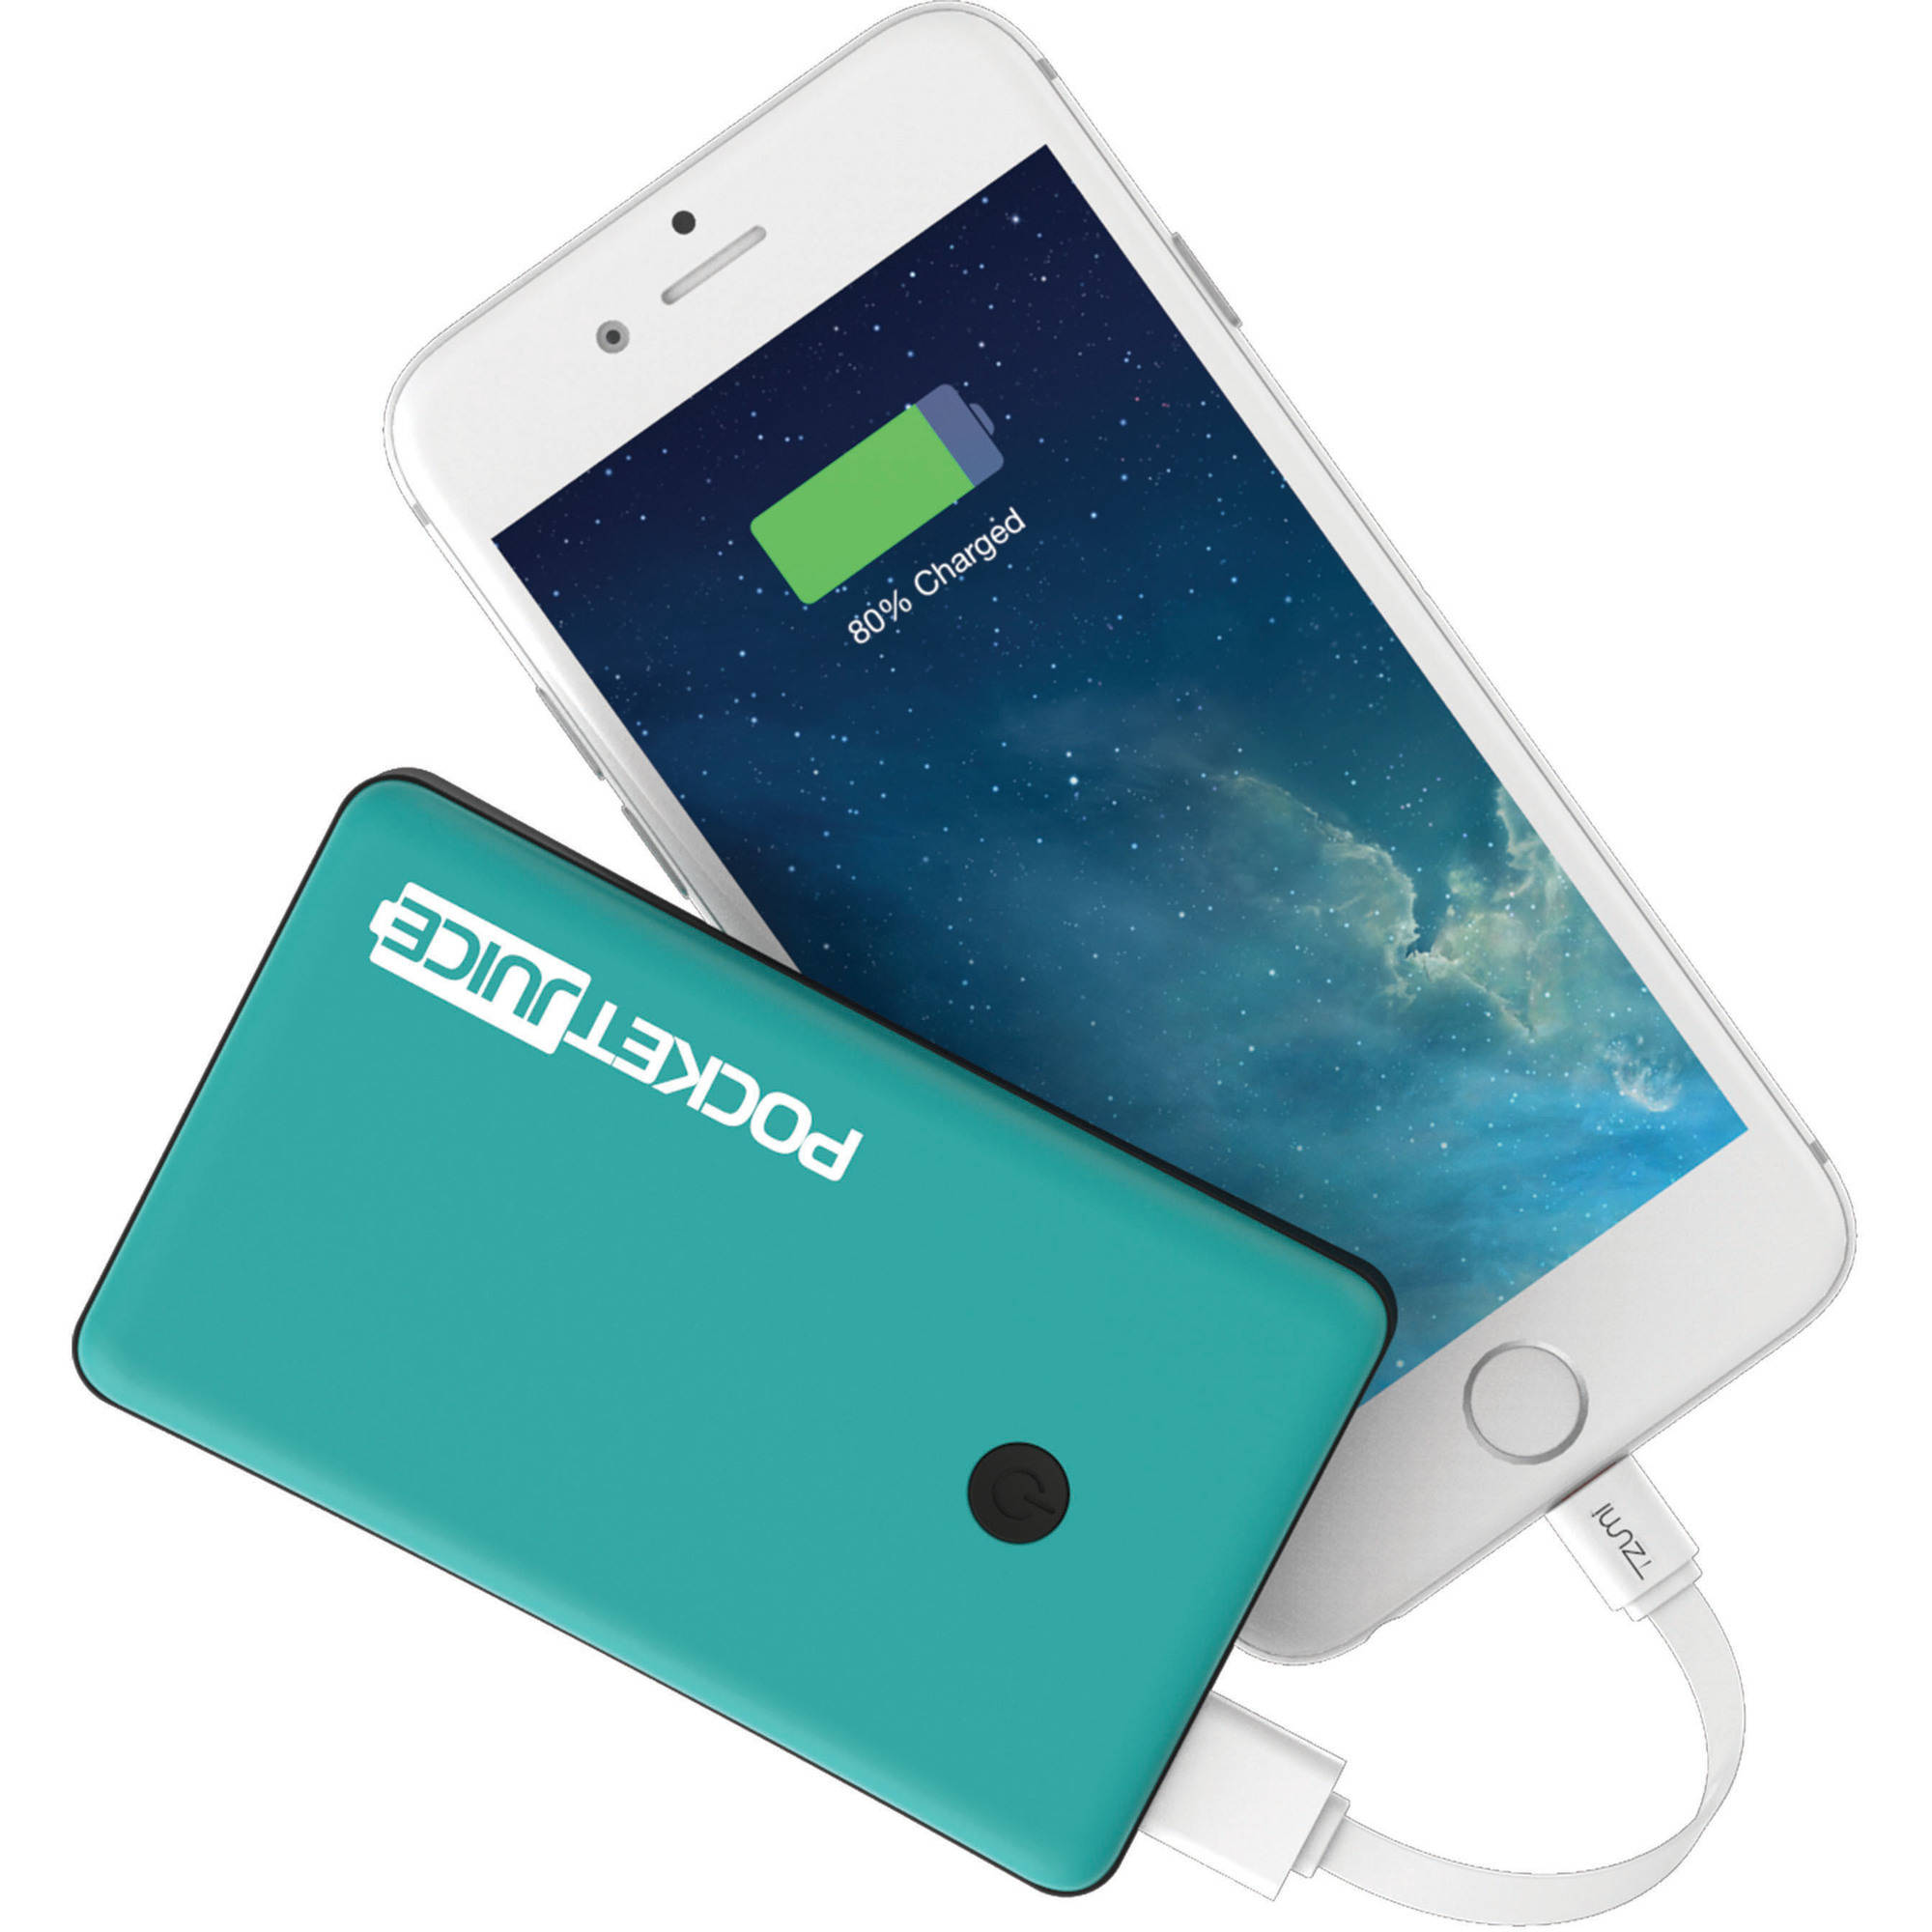 Tzumi Pocket Juice Slim 4,000mAh Solo Portable Charger, Teal